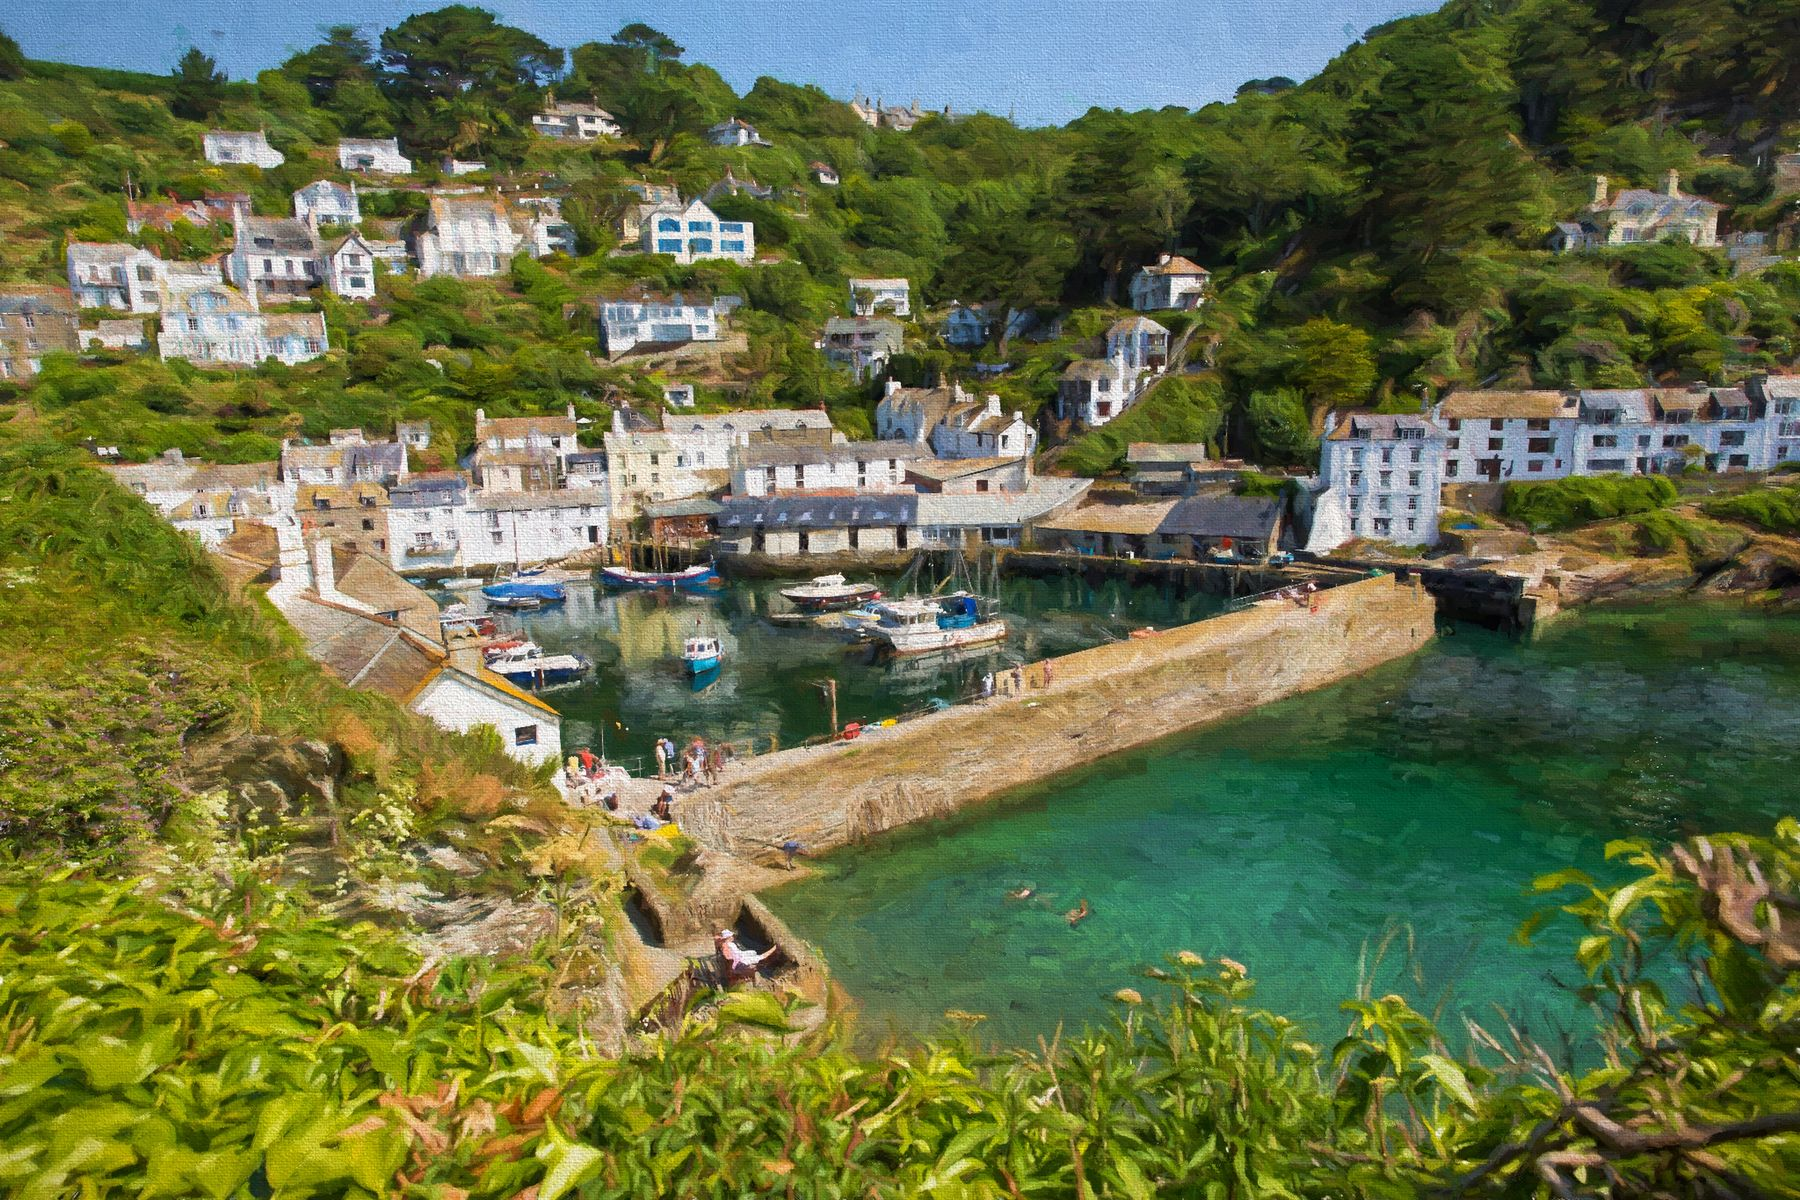 Polperro is one of the best coastal villages in England